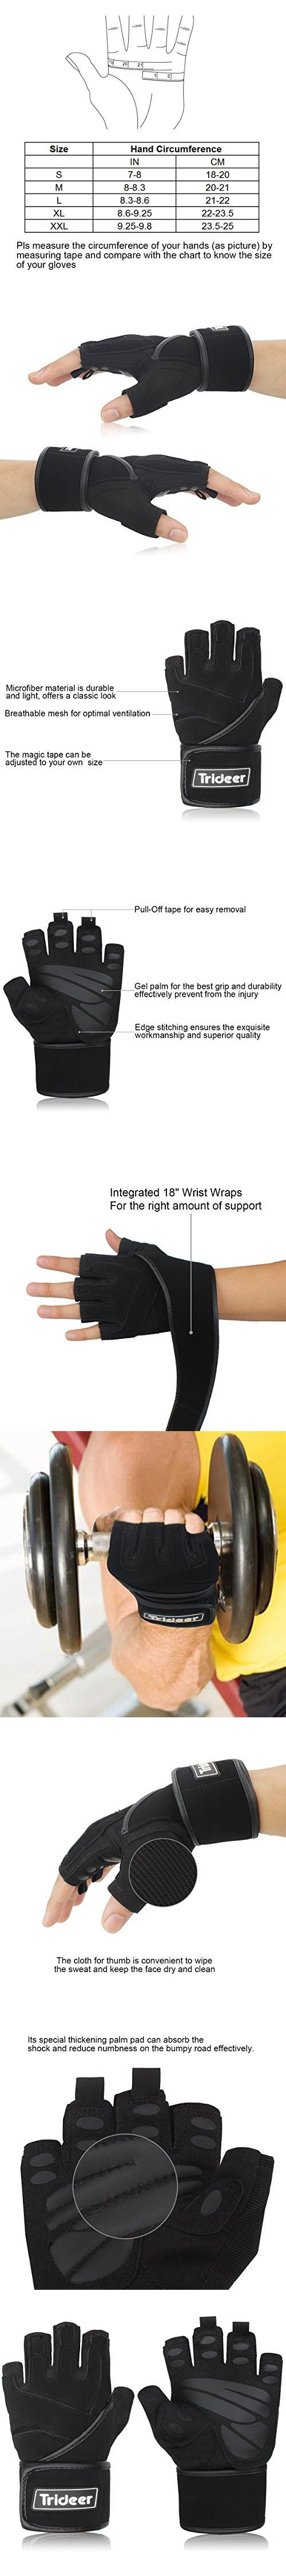 """Trideer Weight Lifting Gloves, Gym Workout Training Crossfit Fitness Bodybuilding Exercise Glove, Half Finger/Fingerless Microfiber&Silica Gel Grip with 18"""" Adjustable Strap, For Men&Women"""